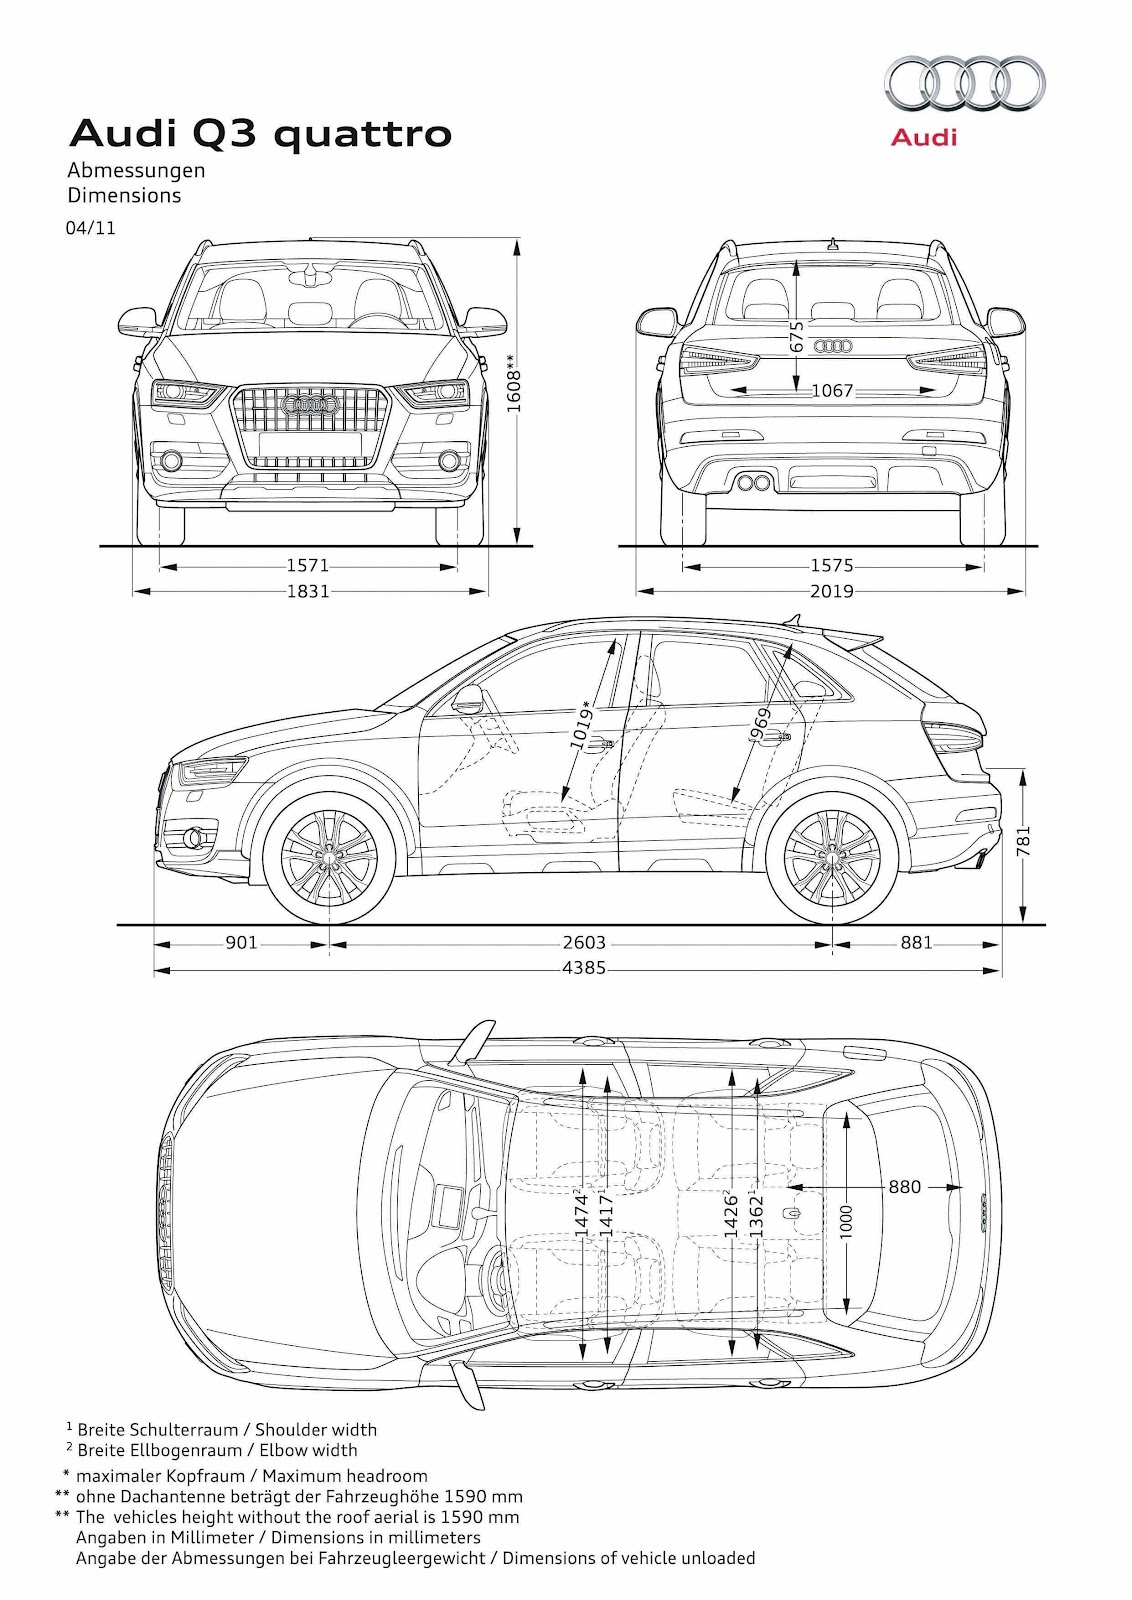 0 to 62mph. OFFICIAL.: 2012 Audi Q3 quattro: The Pictures